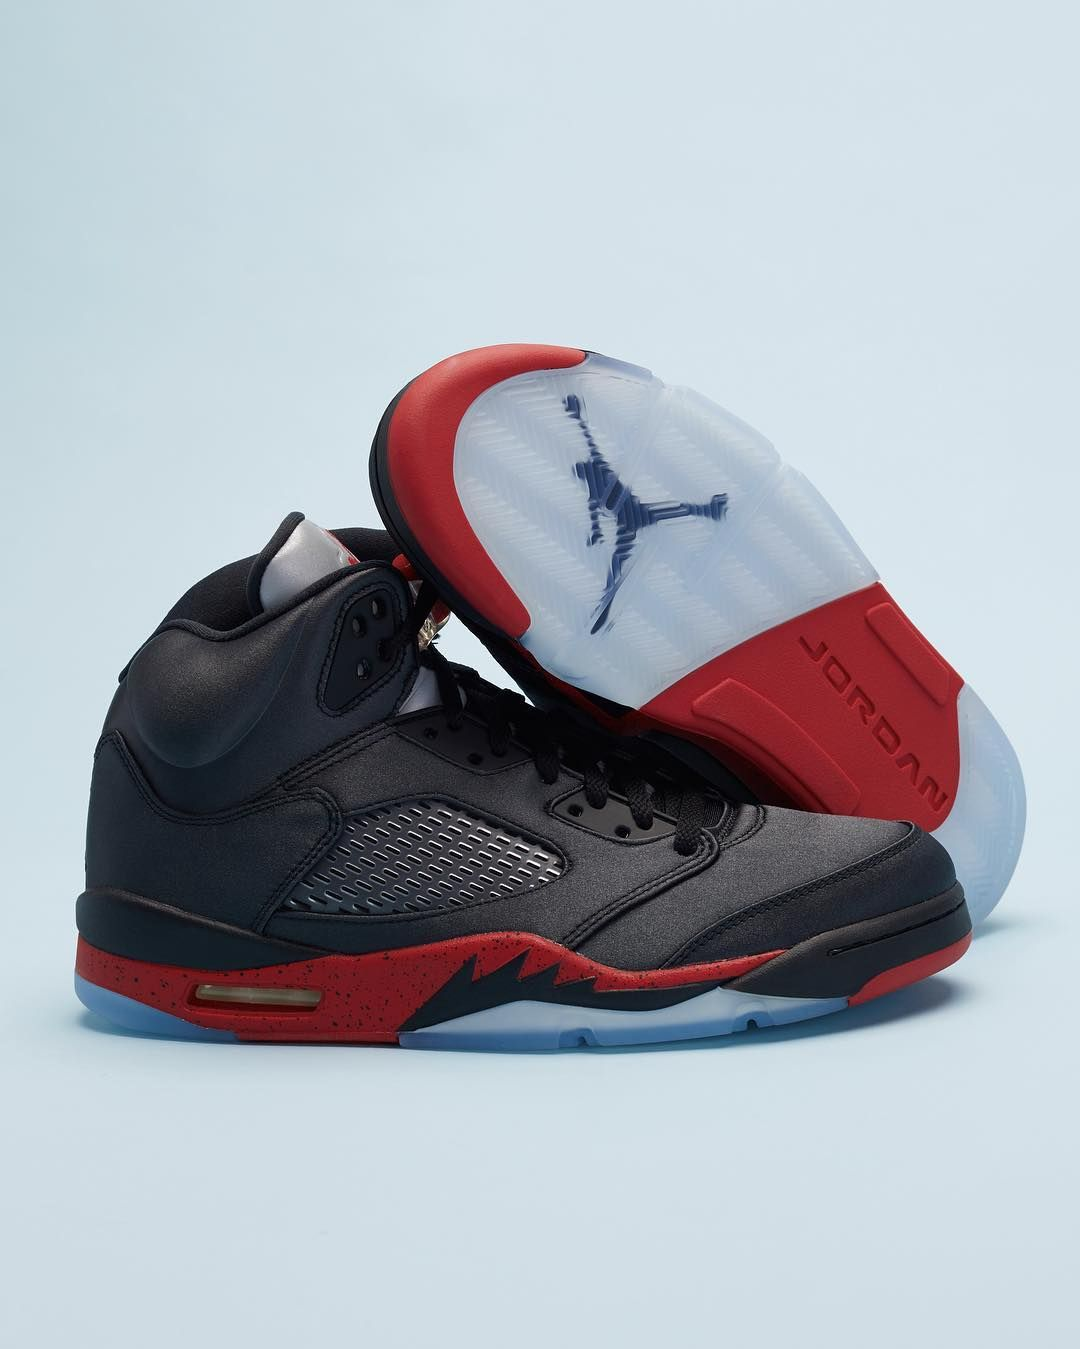 31e5cc49 The Satin Bred Jordan 5 is coming soon. Tap the photo to secure your pair  today.